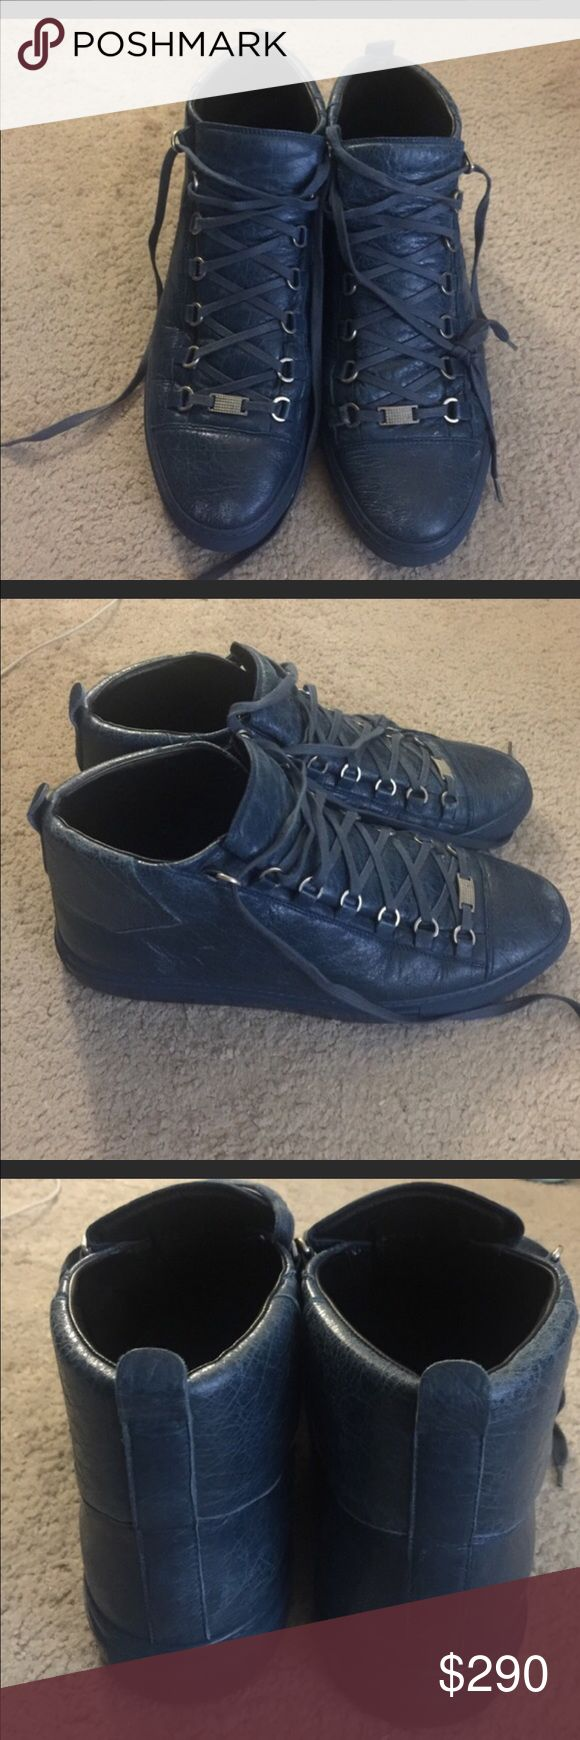 Men's blue Balenciaga arena sneakers sz 13 Men's blue Balenciaga arena sneakers sz 13. They are a 13 but they fit like a 13.5. Also they have small faded spots on the front which can be seen in the pictures. Balenciaga Shoes Sneakers